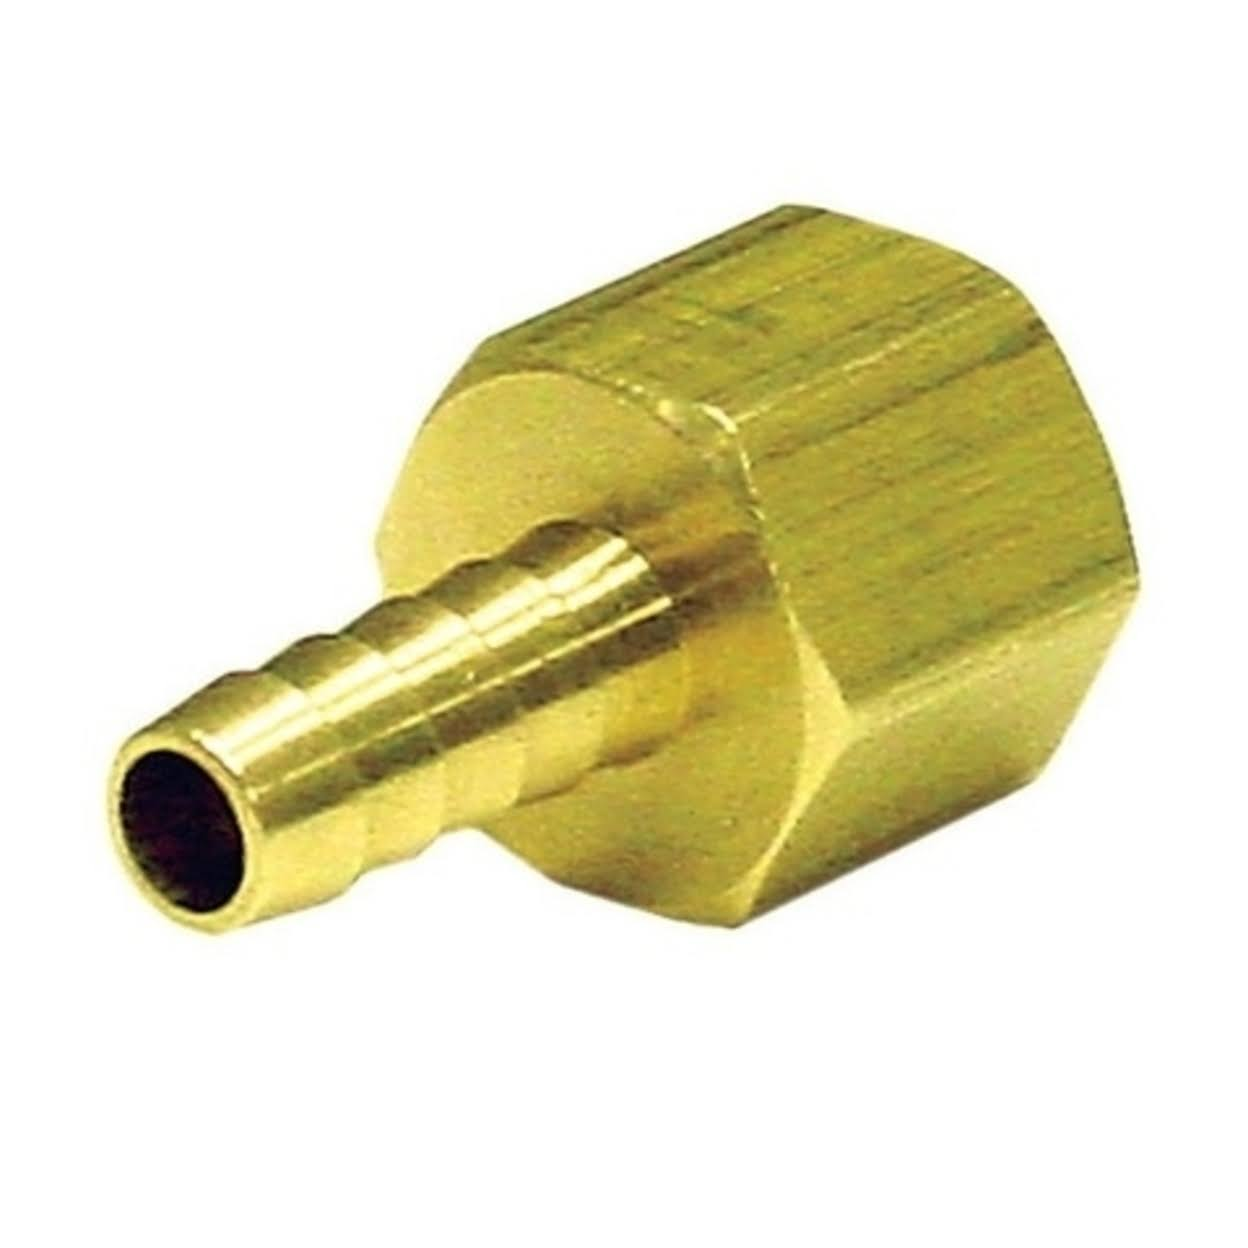 "JMF Lead Free Hose Barb - 1/2"" x 3/8"", Yellow Brass"